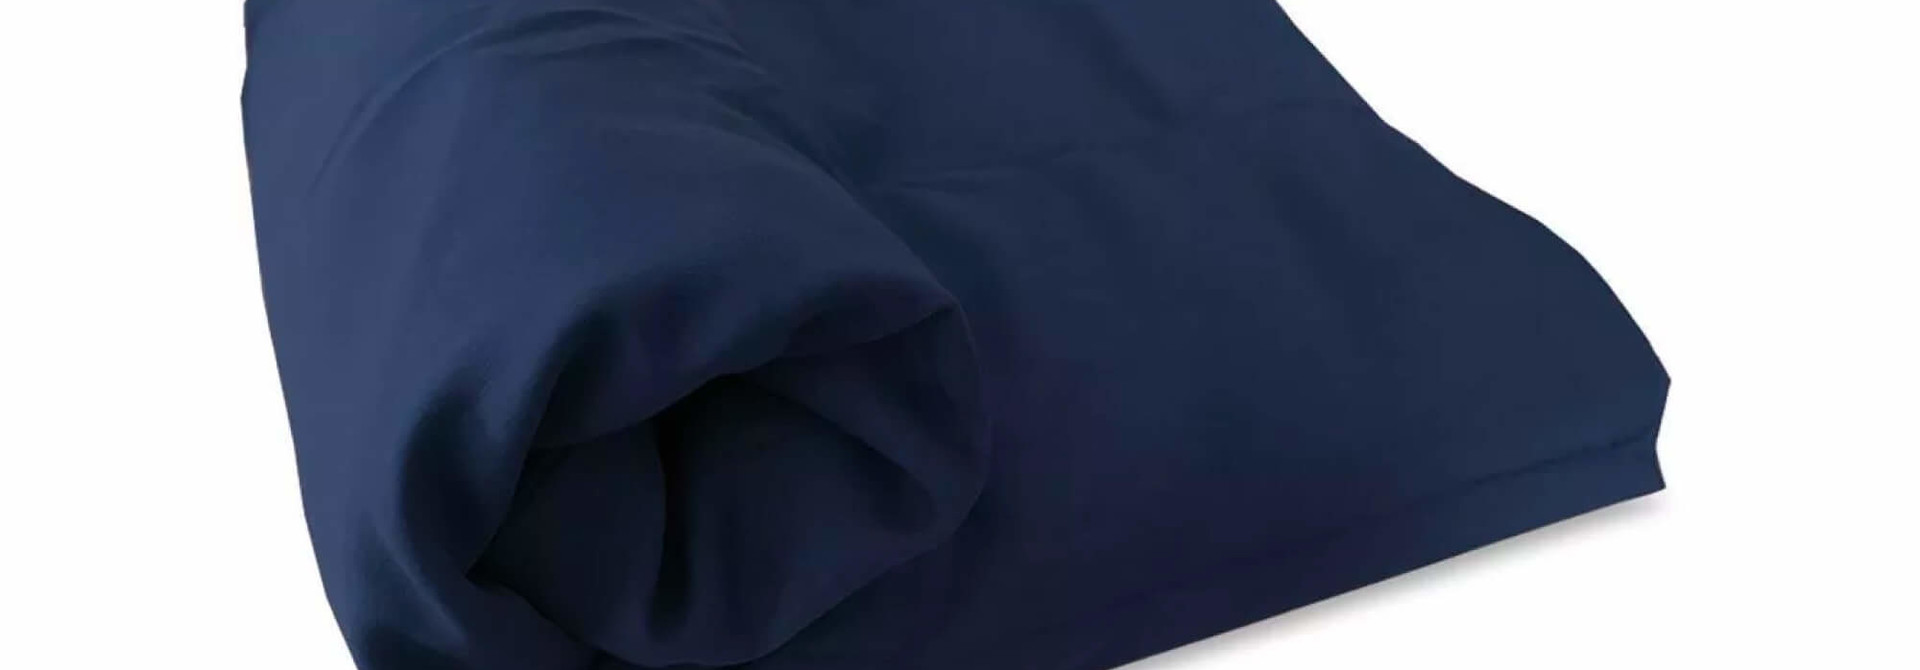 Cotton Liner Std Navy